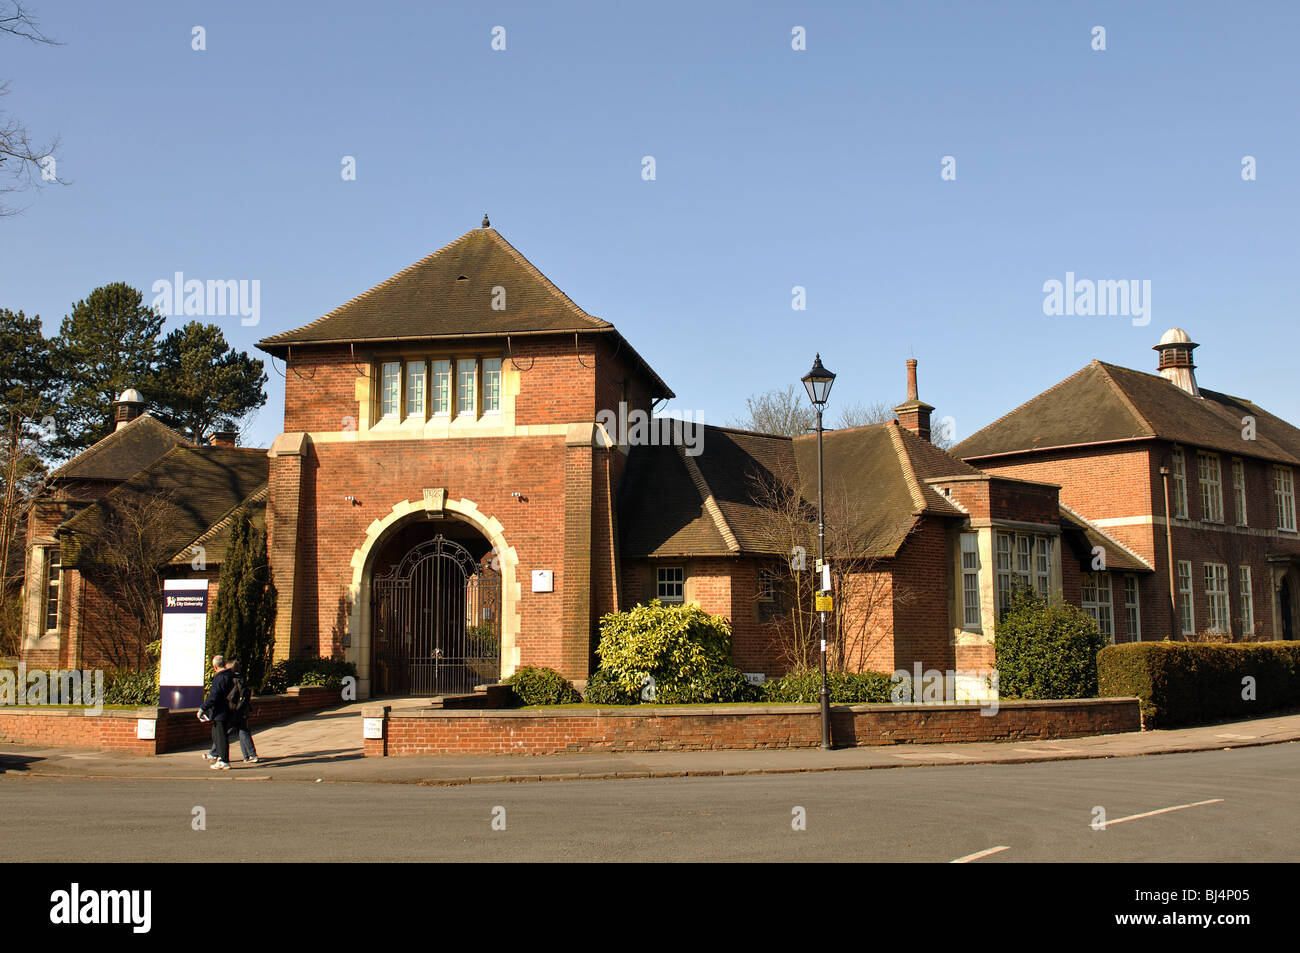 Bournville Centre for Visual Arts, Bournville, Birmingham, England, UK - Stock Image